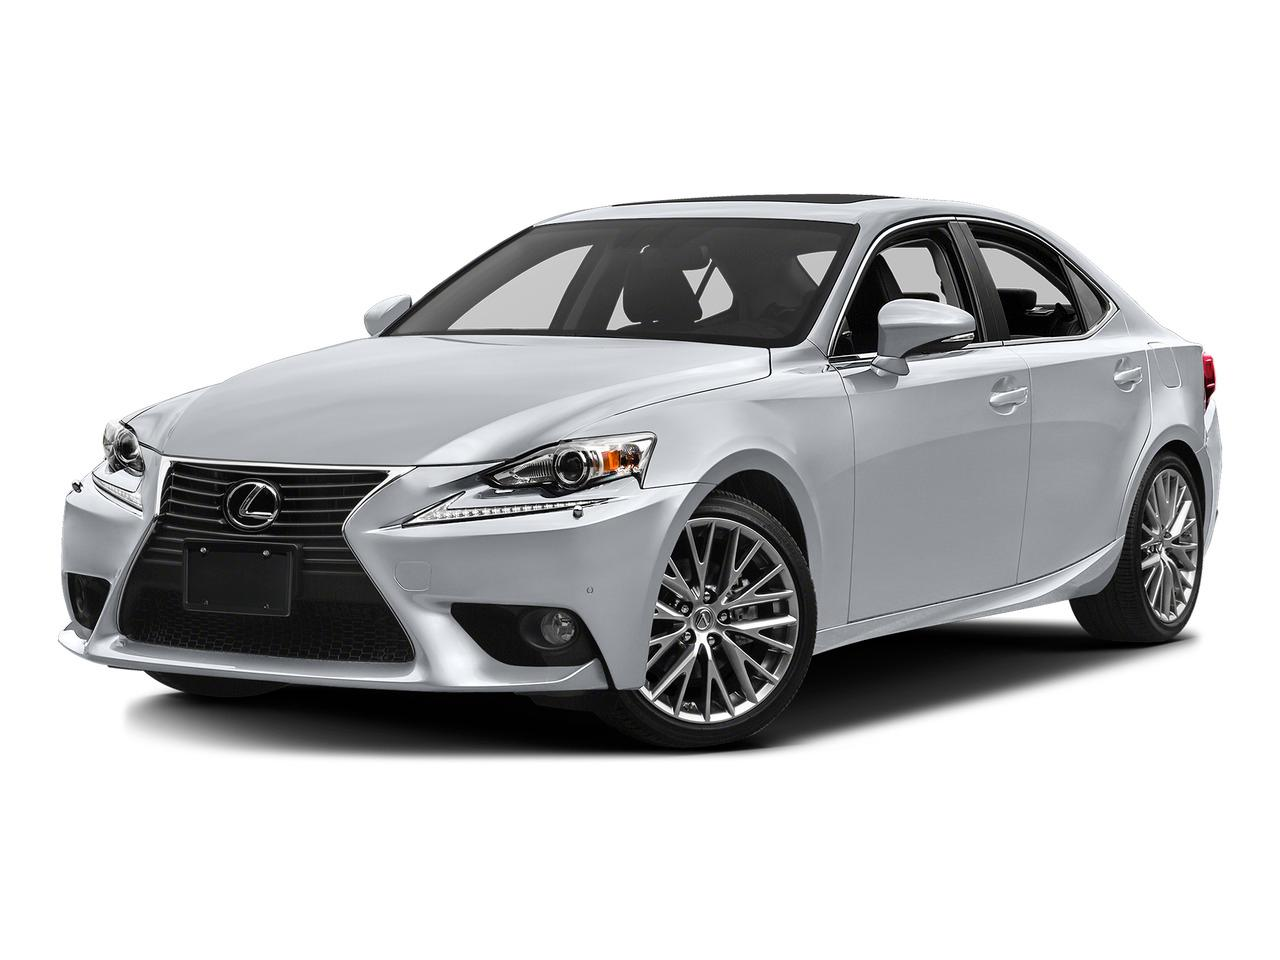 2015 Lexus IS 250 Vehicle Photo in Johnson City, TN 37601